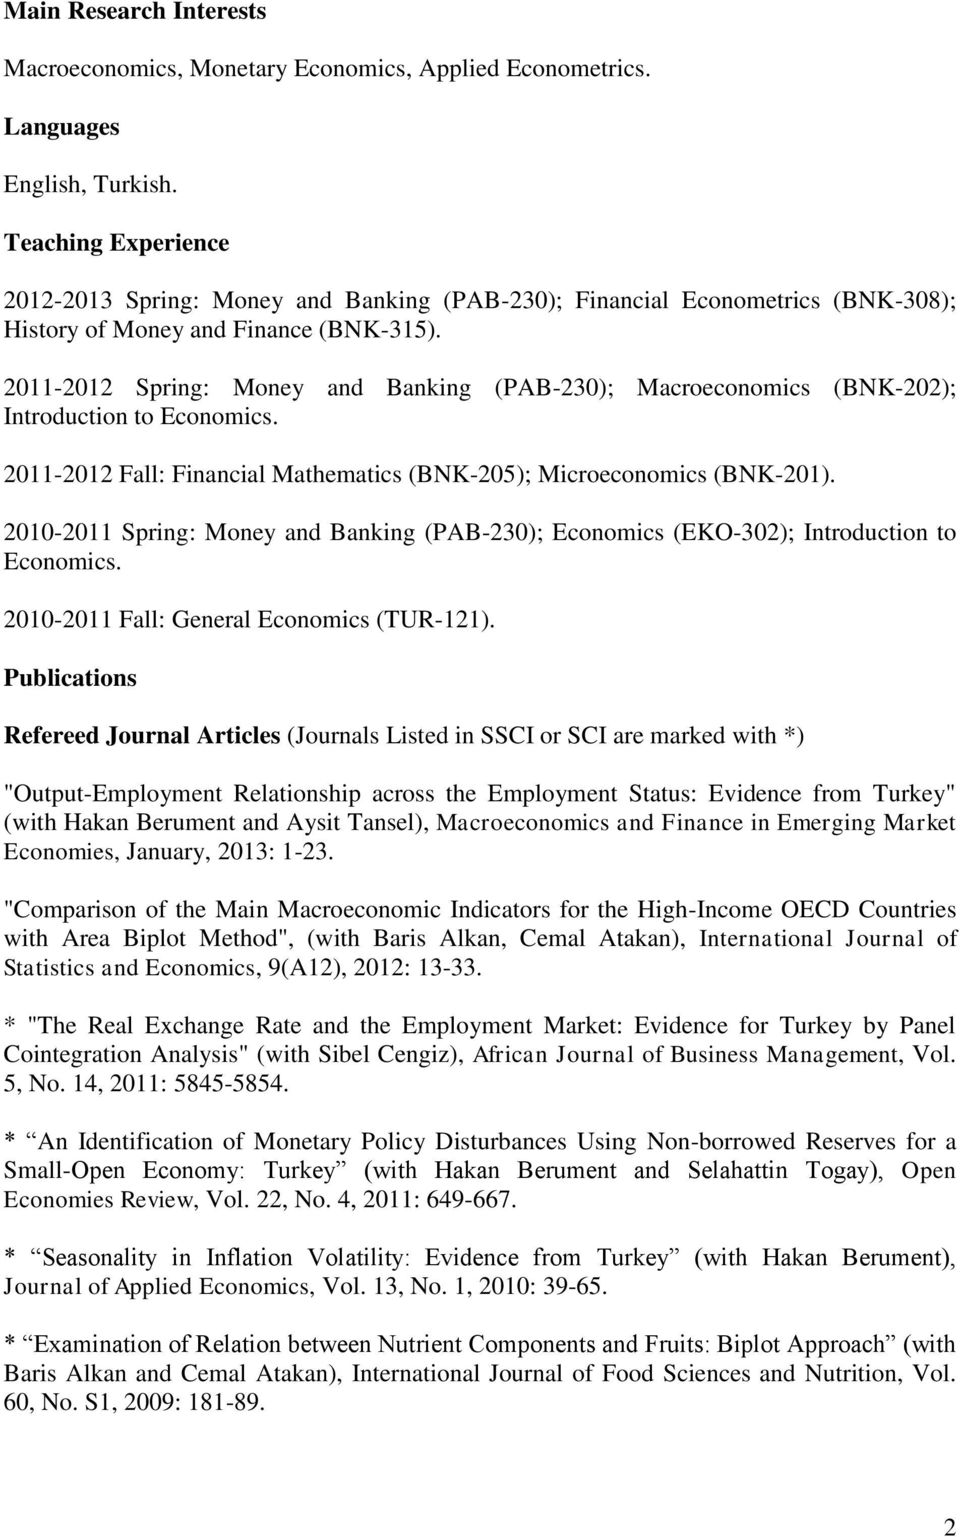 2011-2012 Spring: Money and Banking (PAB-230); Macroeconomics (BNK-202); Introduction to Economics. 2011-2012 Fall: Financial Mathematics (BNK-205); Microeconomics (BNK-201).